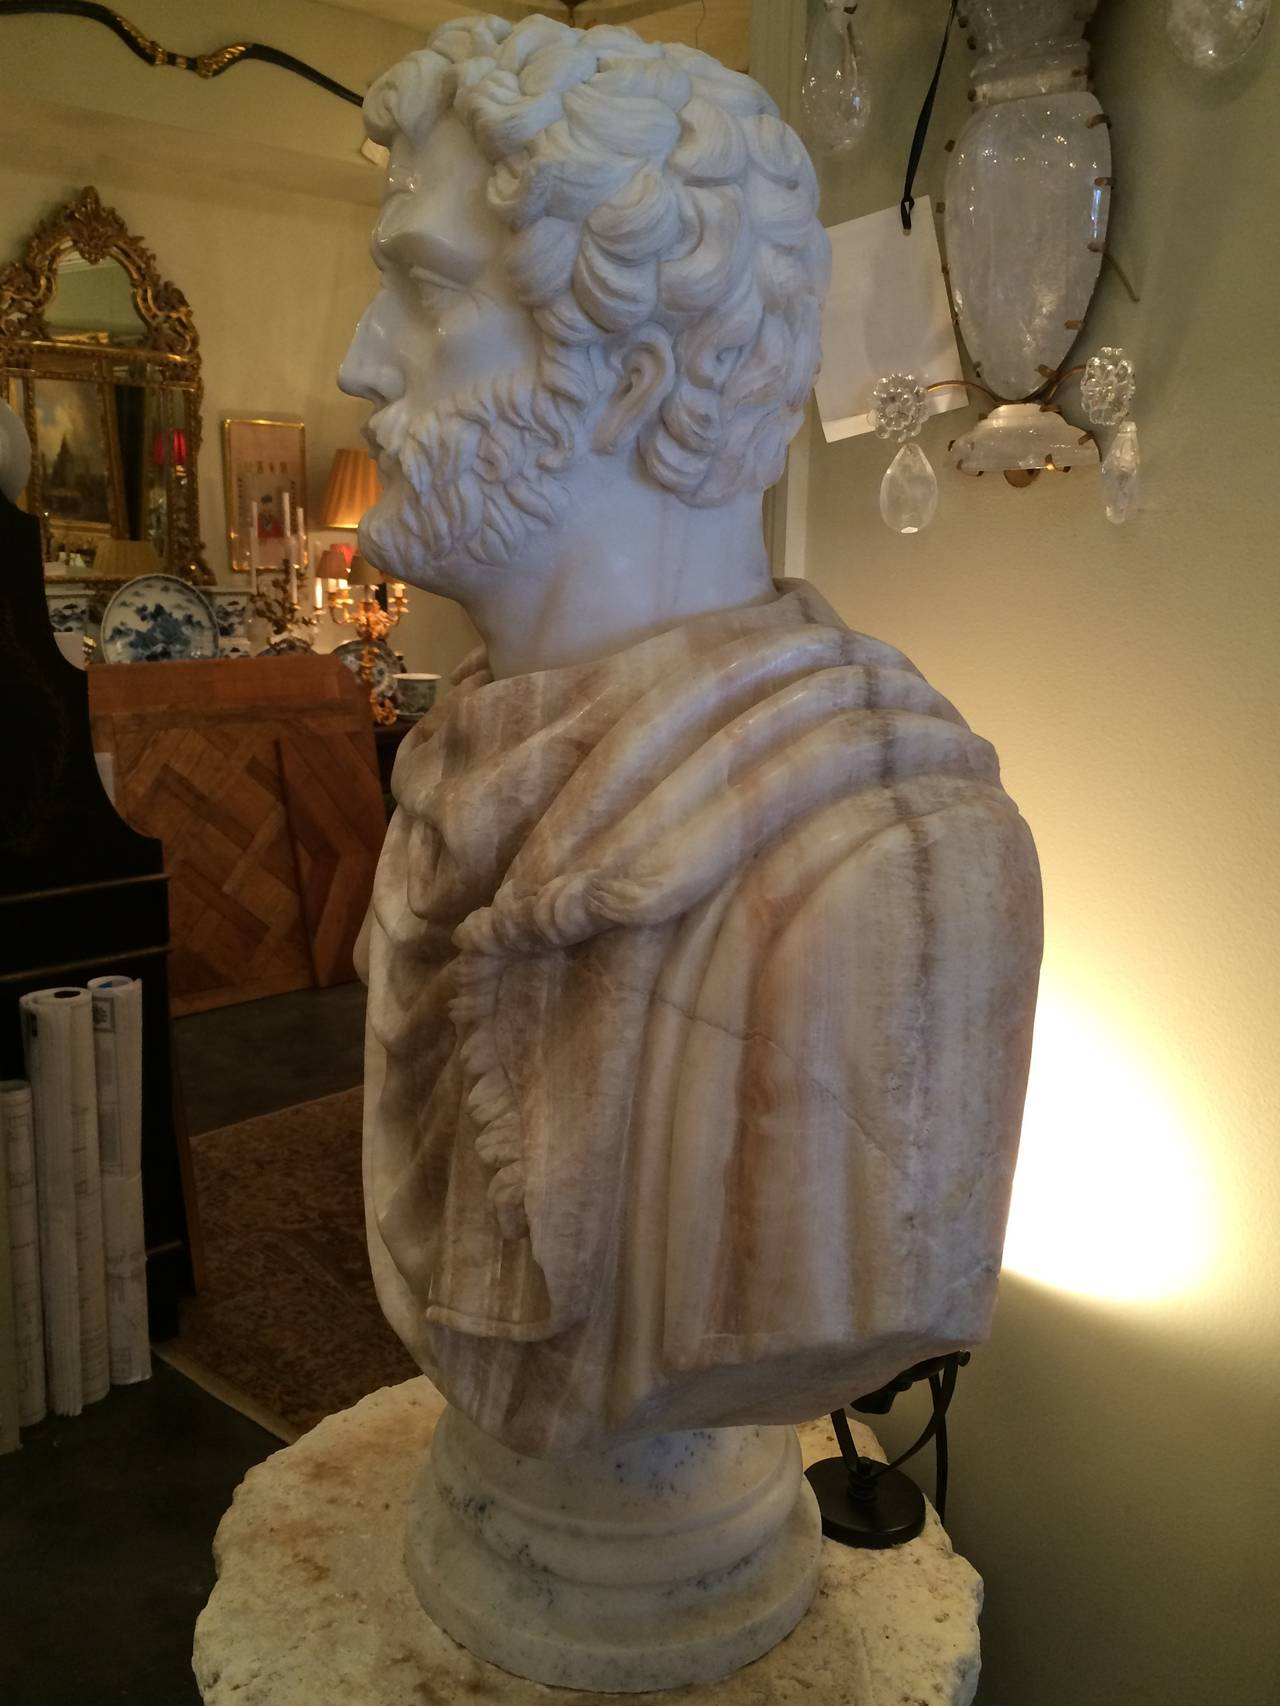 Carrera Marble and Honey Onyx Bust of Clasical Roman. 20th century with impressive detail. Very handsome features with stunning craftsmanship. PROVENANCE: Rhode Island estate